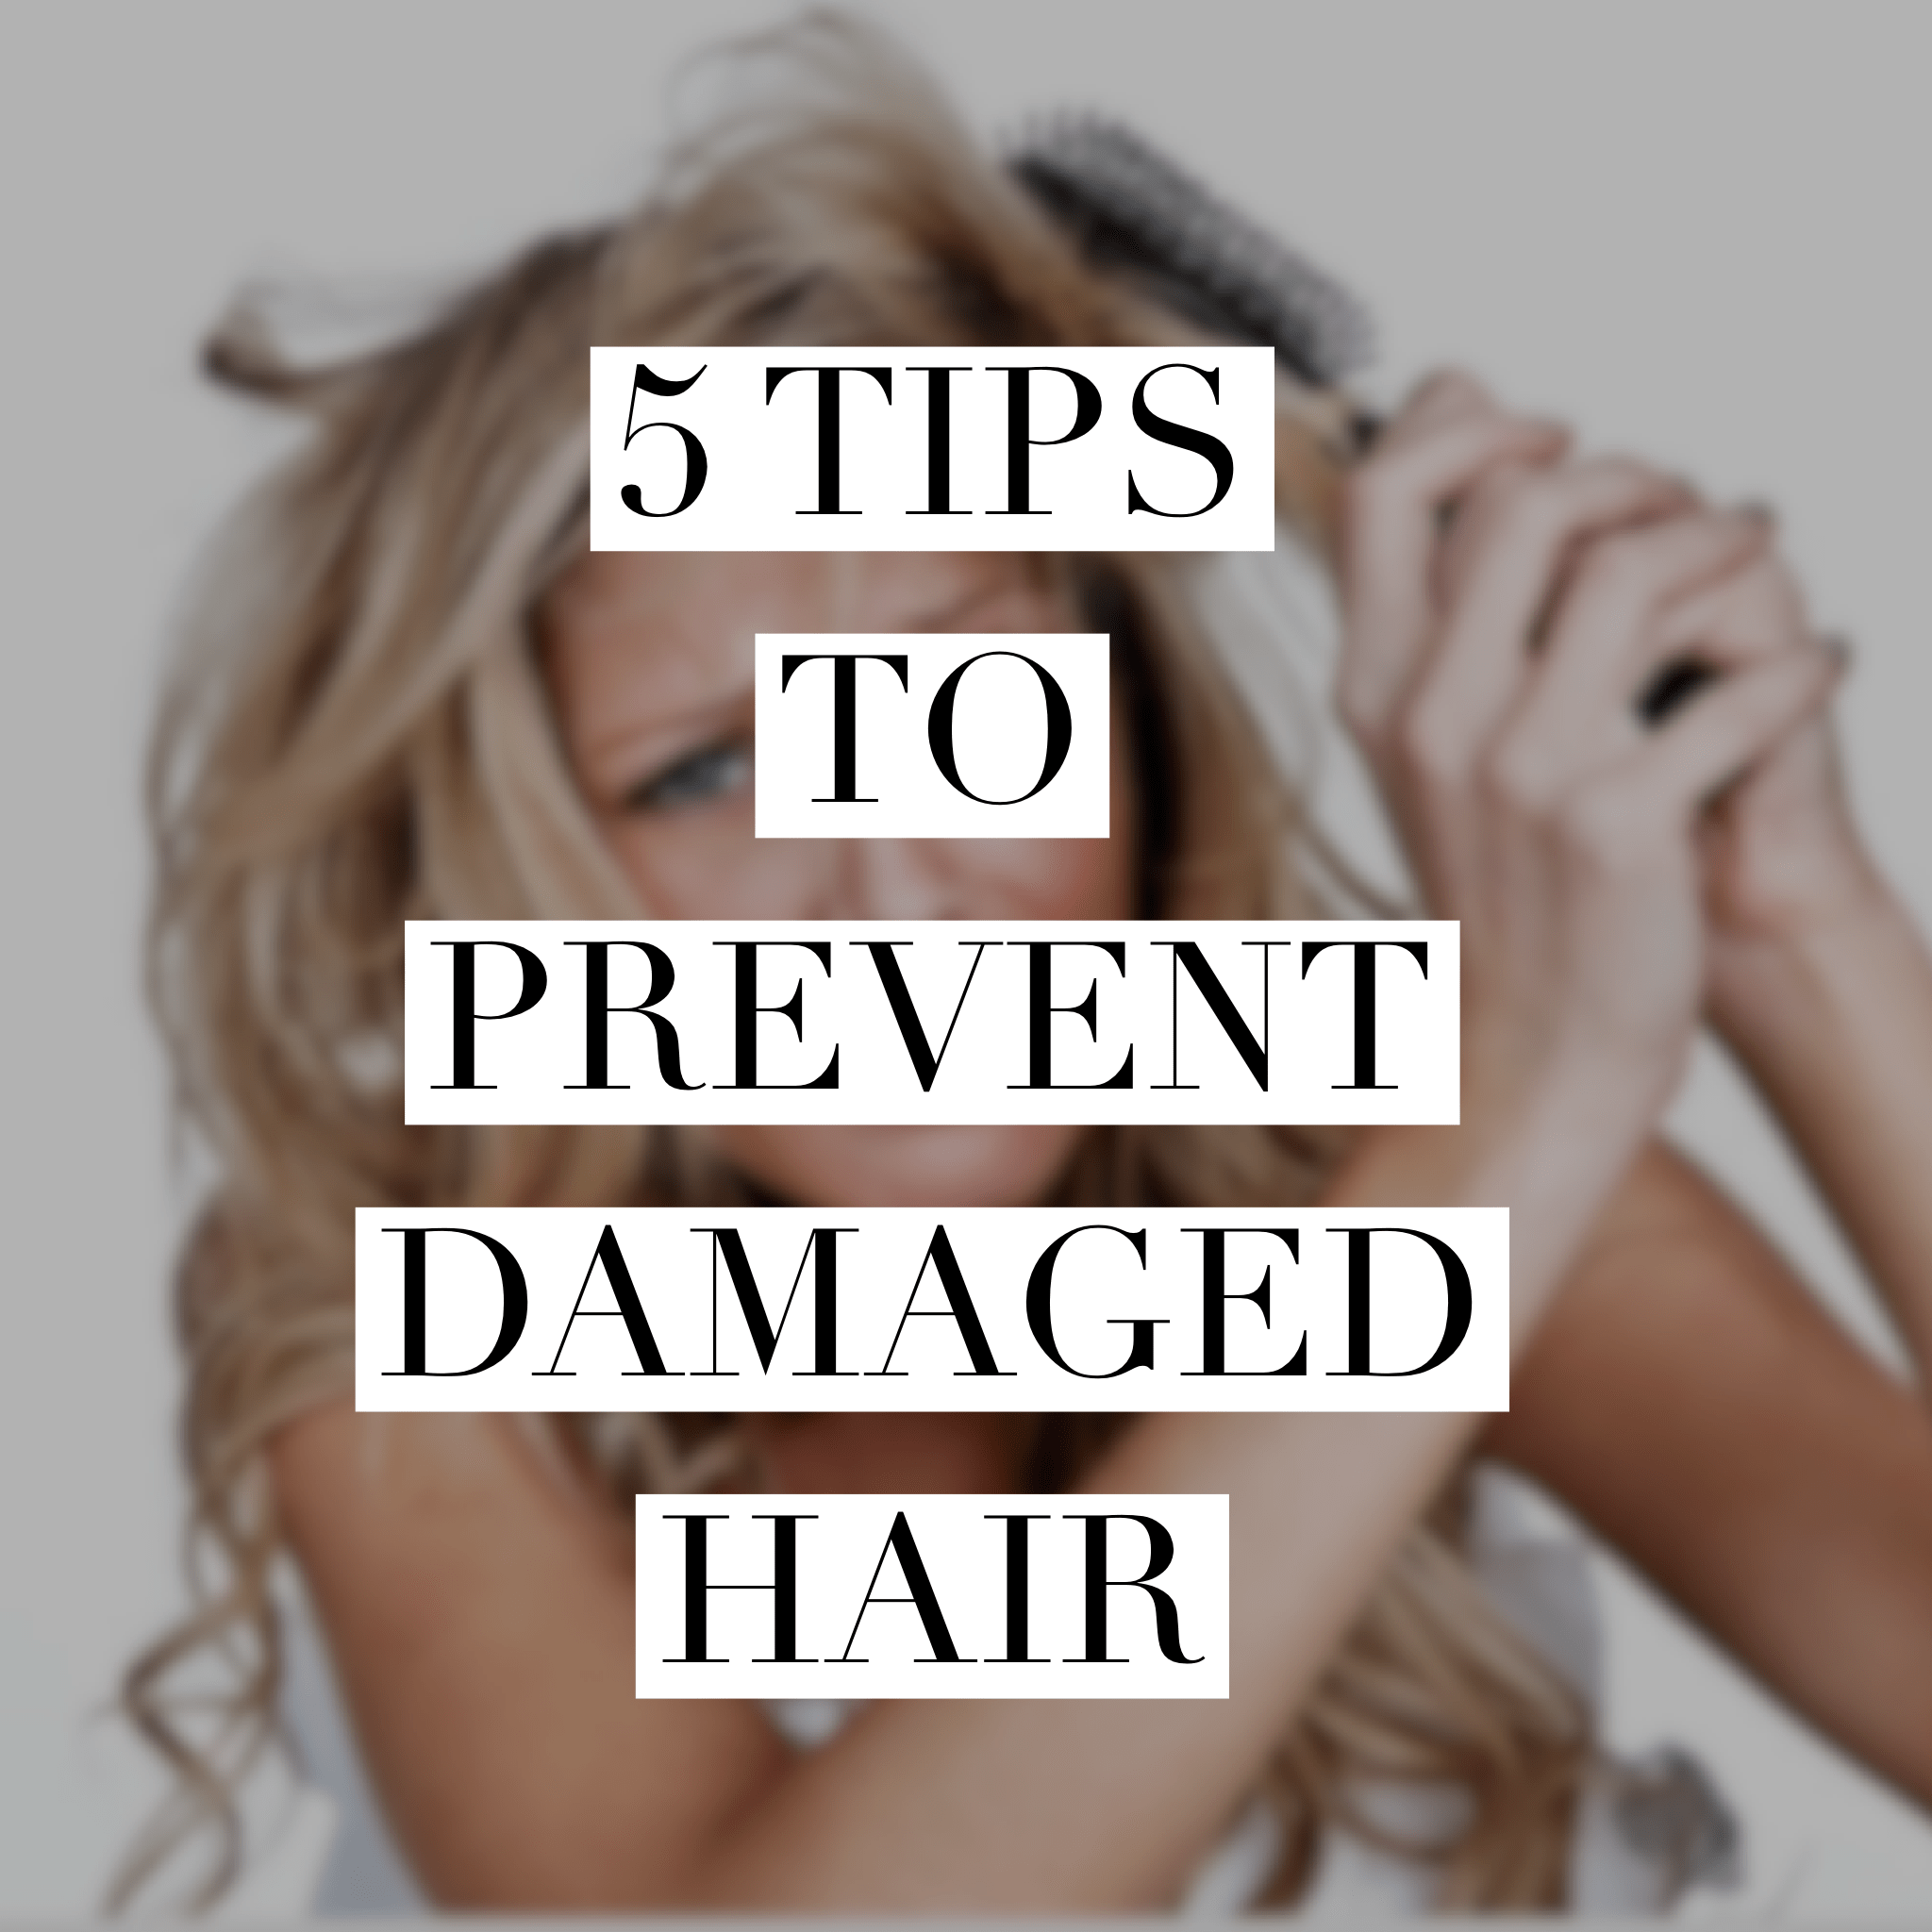 Check out 5 tips to prevent hair damage!